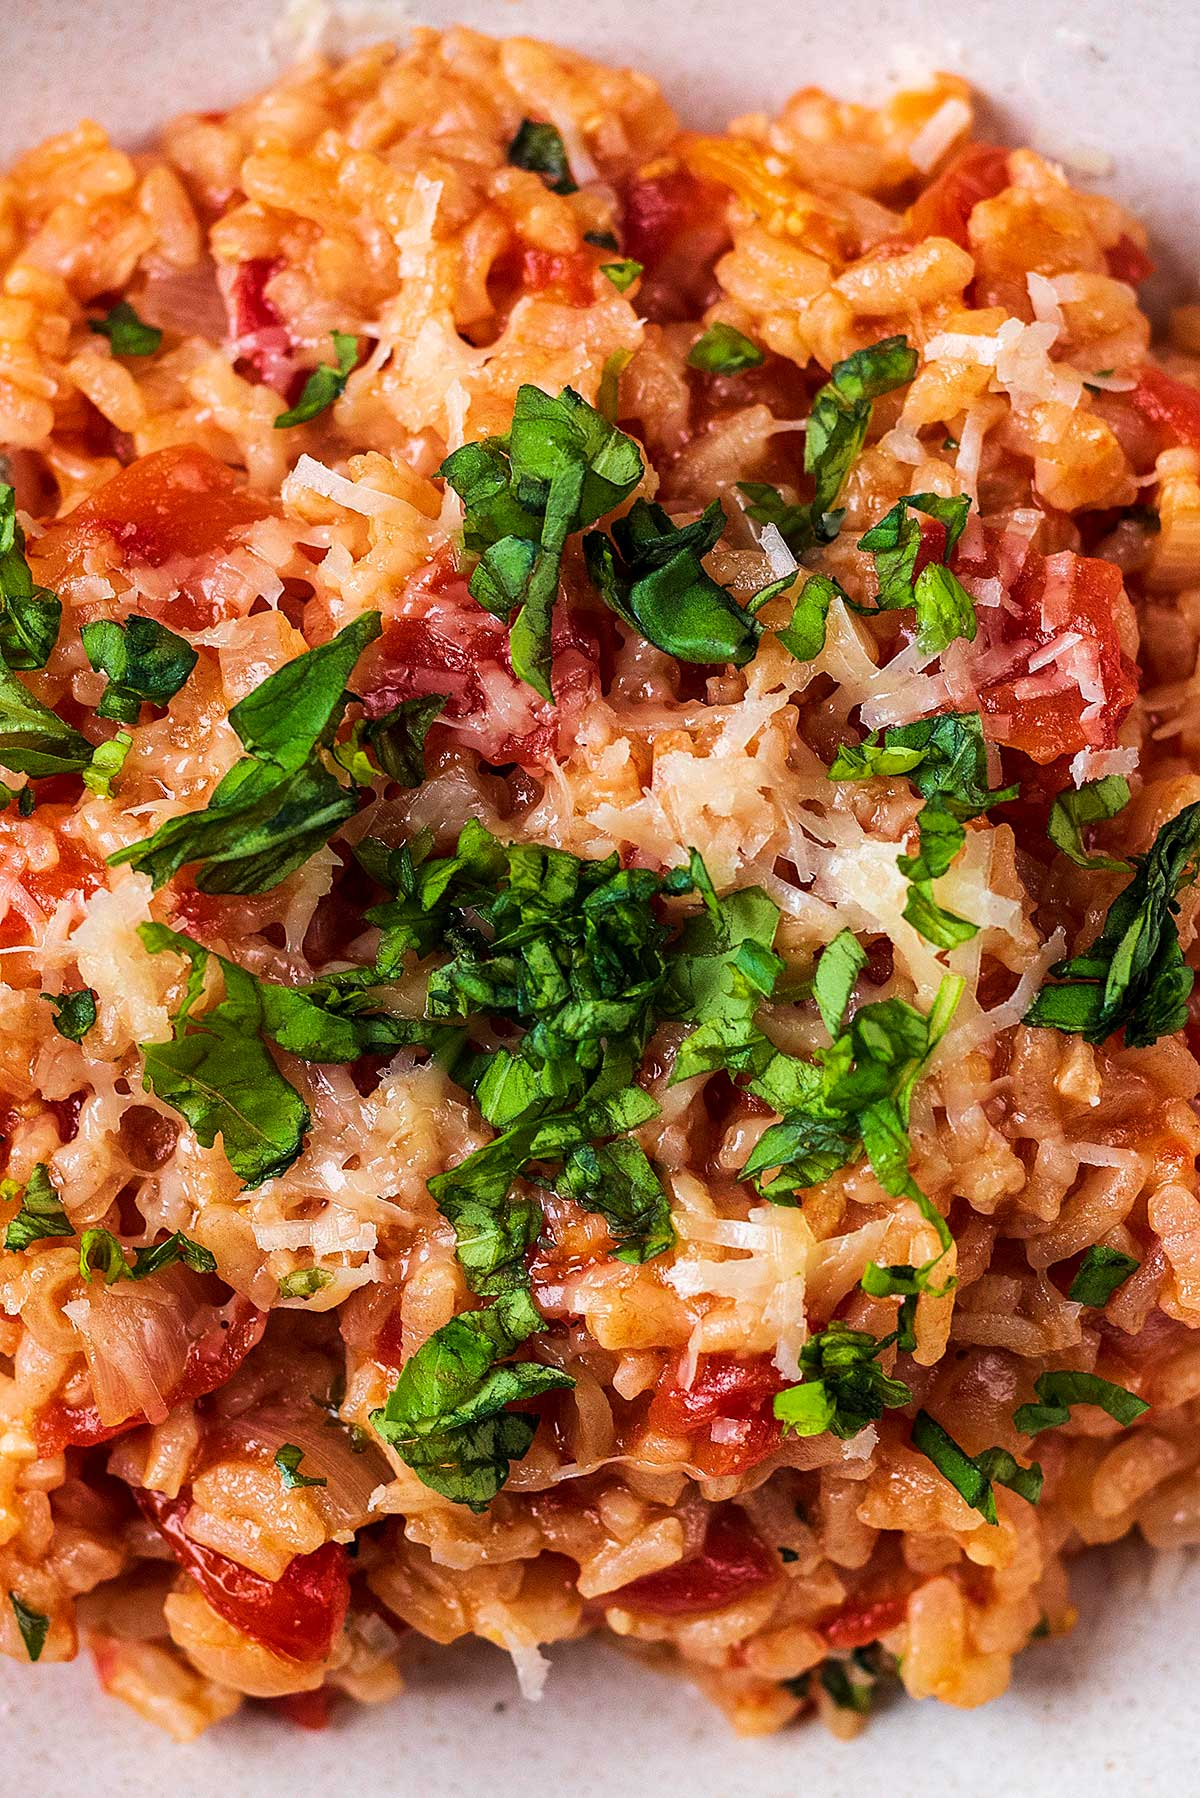 Tomato risotto with grated cheese and chopped herbs on top.